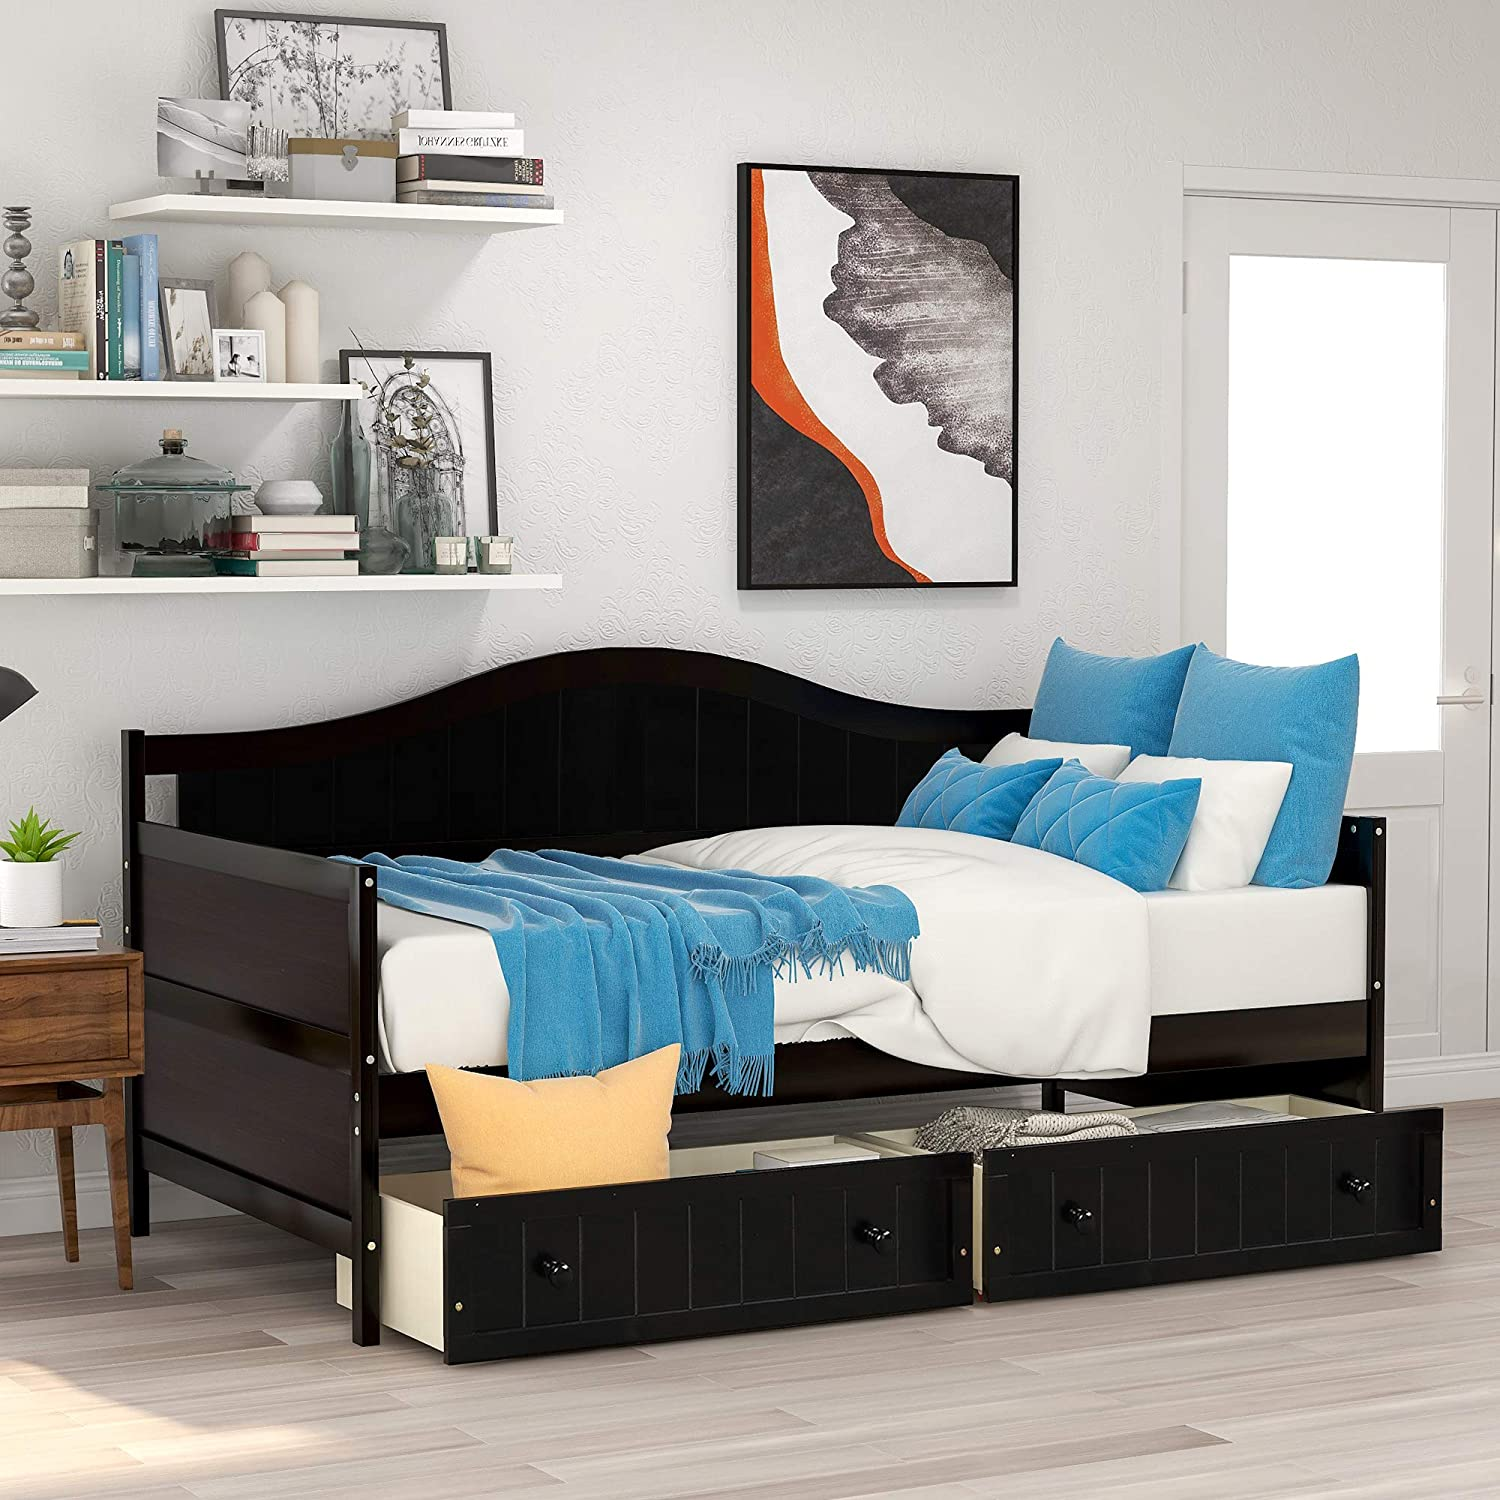 Twin Daybed with 2 Drawers, Wooden Sofa Bed for Bedroom Living Room, No Box Spring Needed (Twin Daybed with Drawers, Espresso)